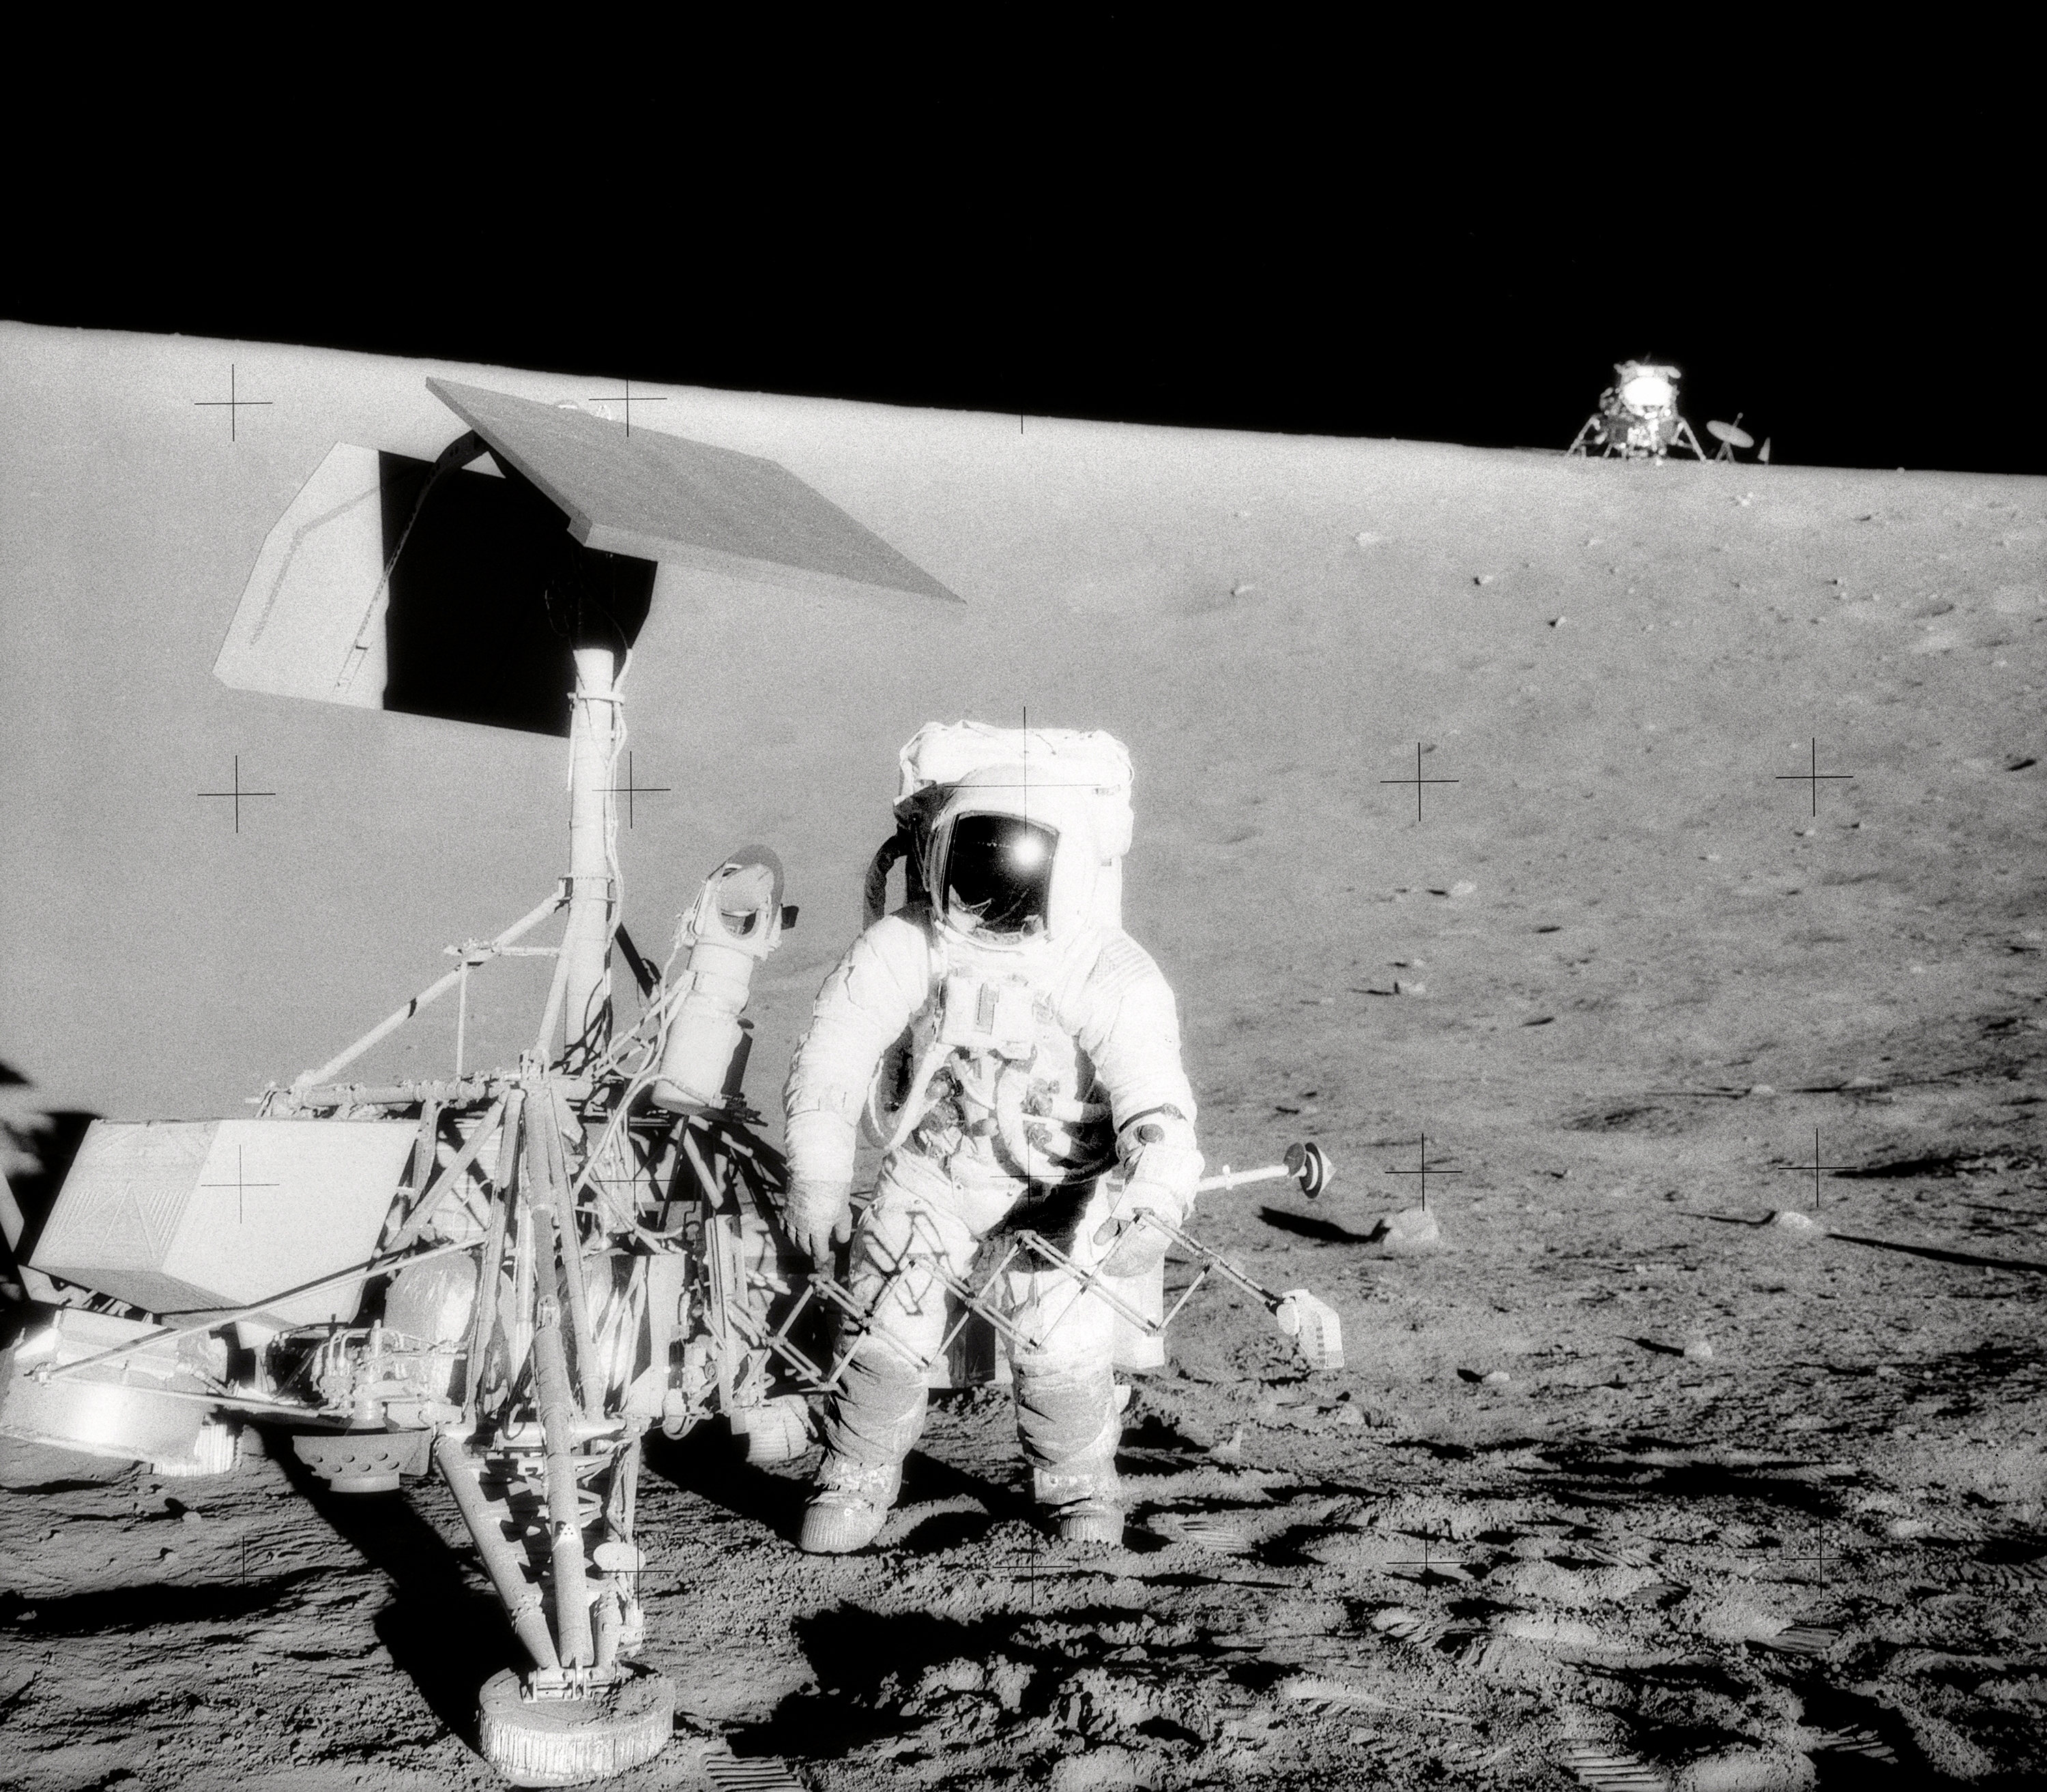 Black and white image of astronaut standing next to robotic lander on the surface of the Moon.